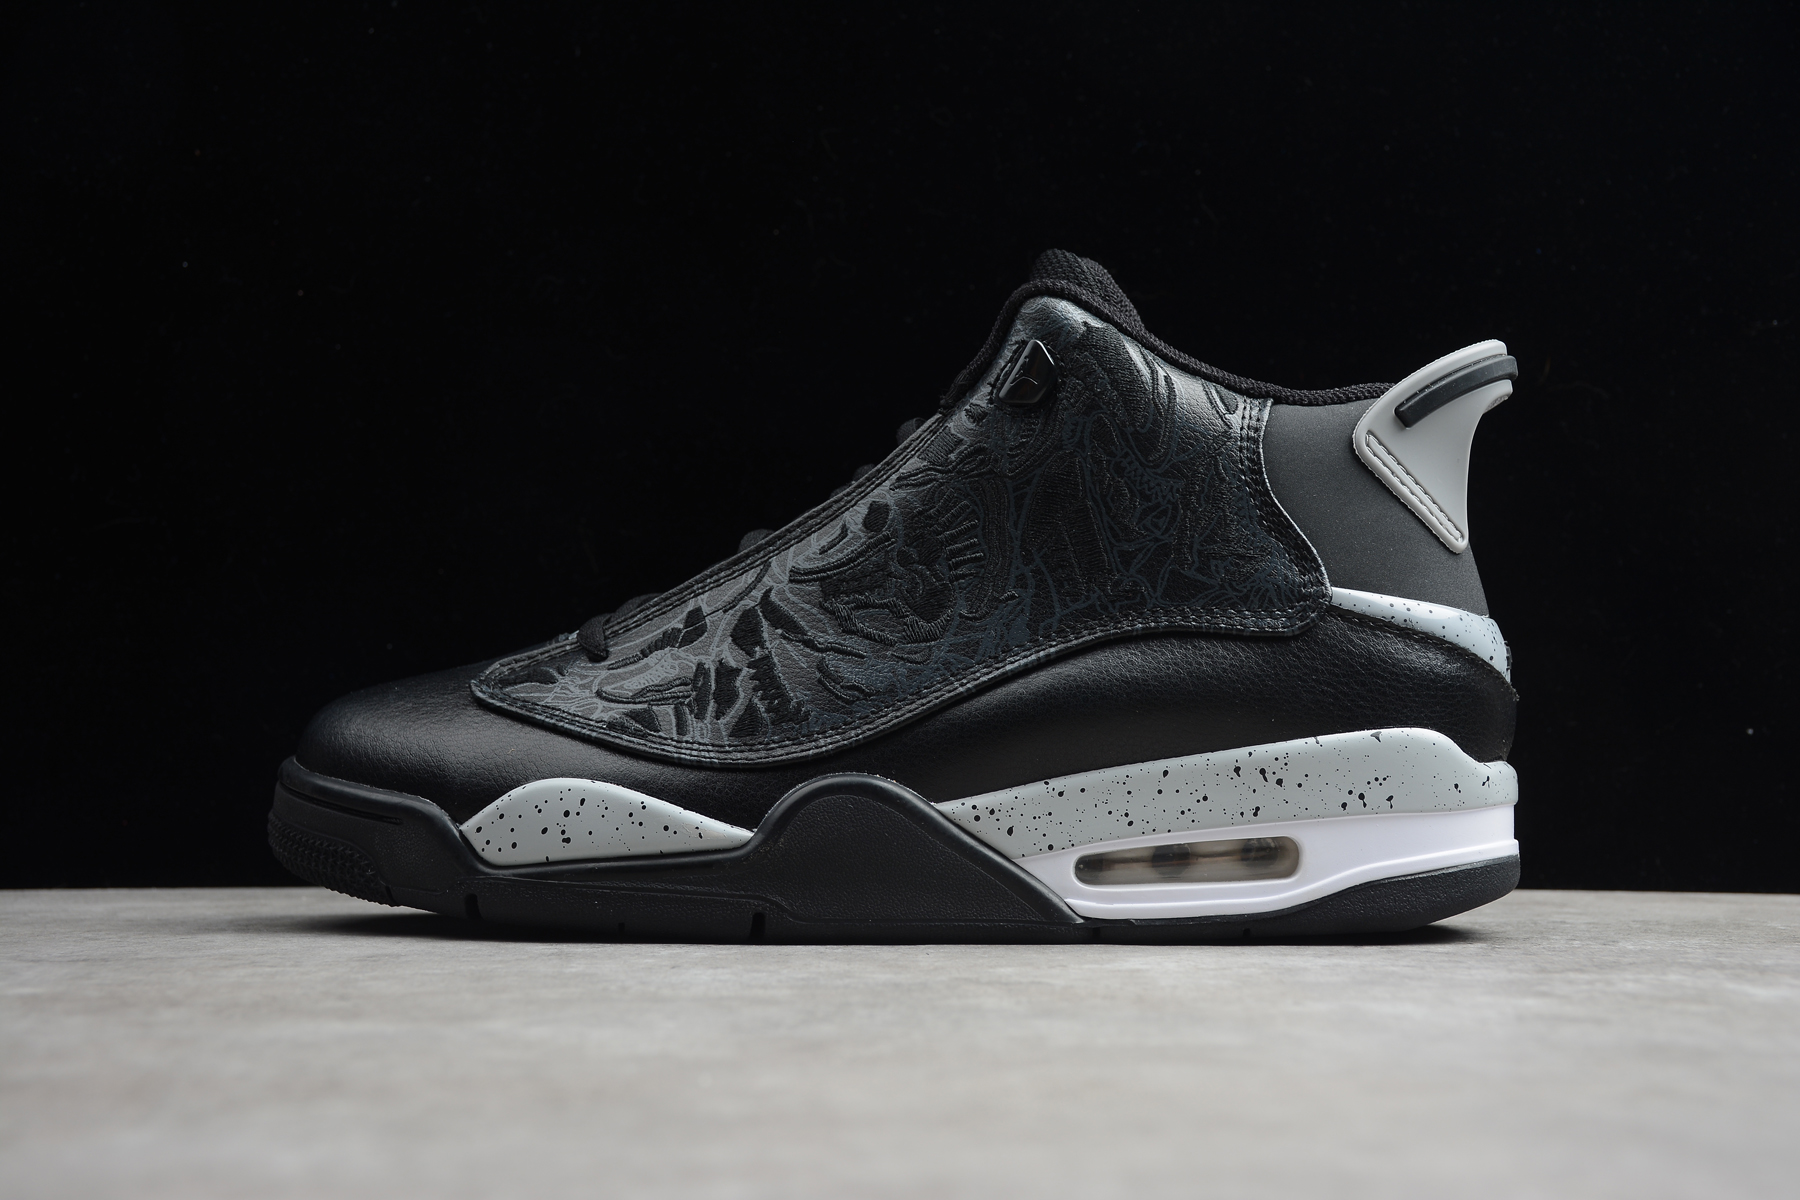 2020 Jordan DUB Zero Black Grey Shoes